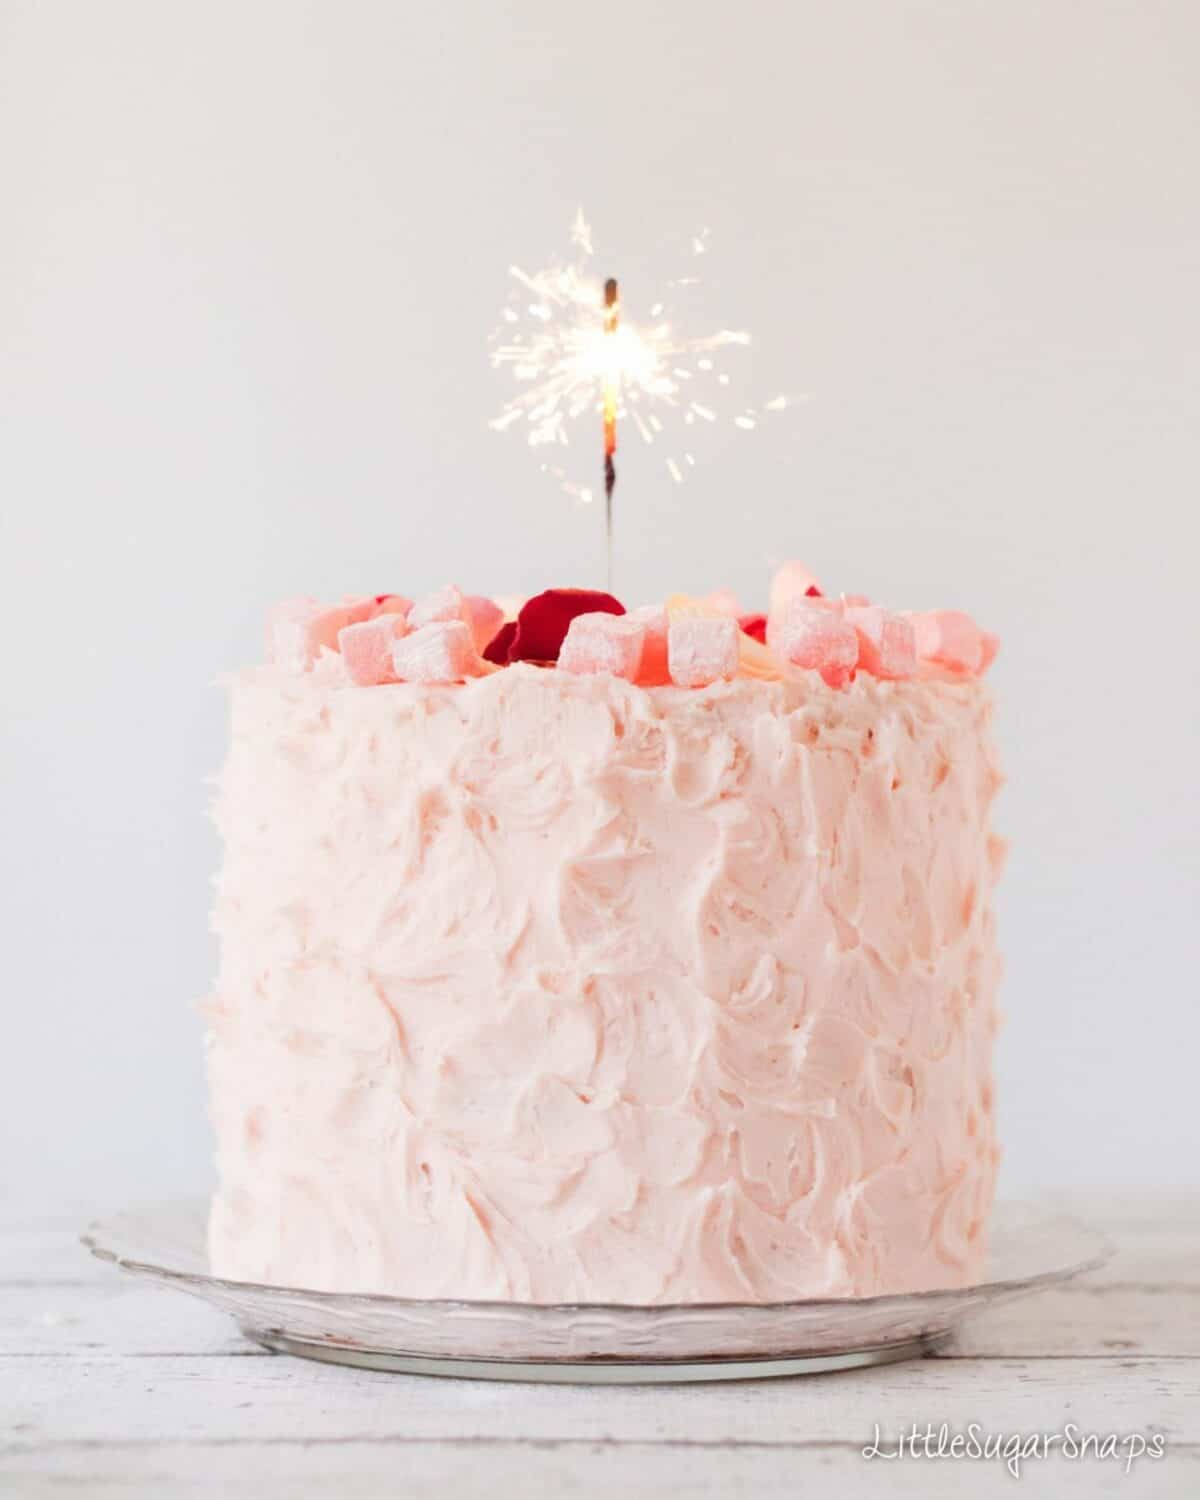 A celebration cake covered in pink frosting and decoated with turkish delight chunks and rose petals with a lit sparkler in the centre